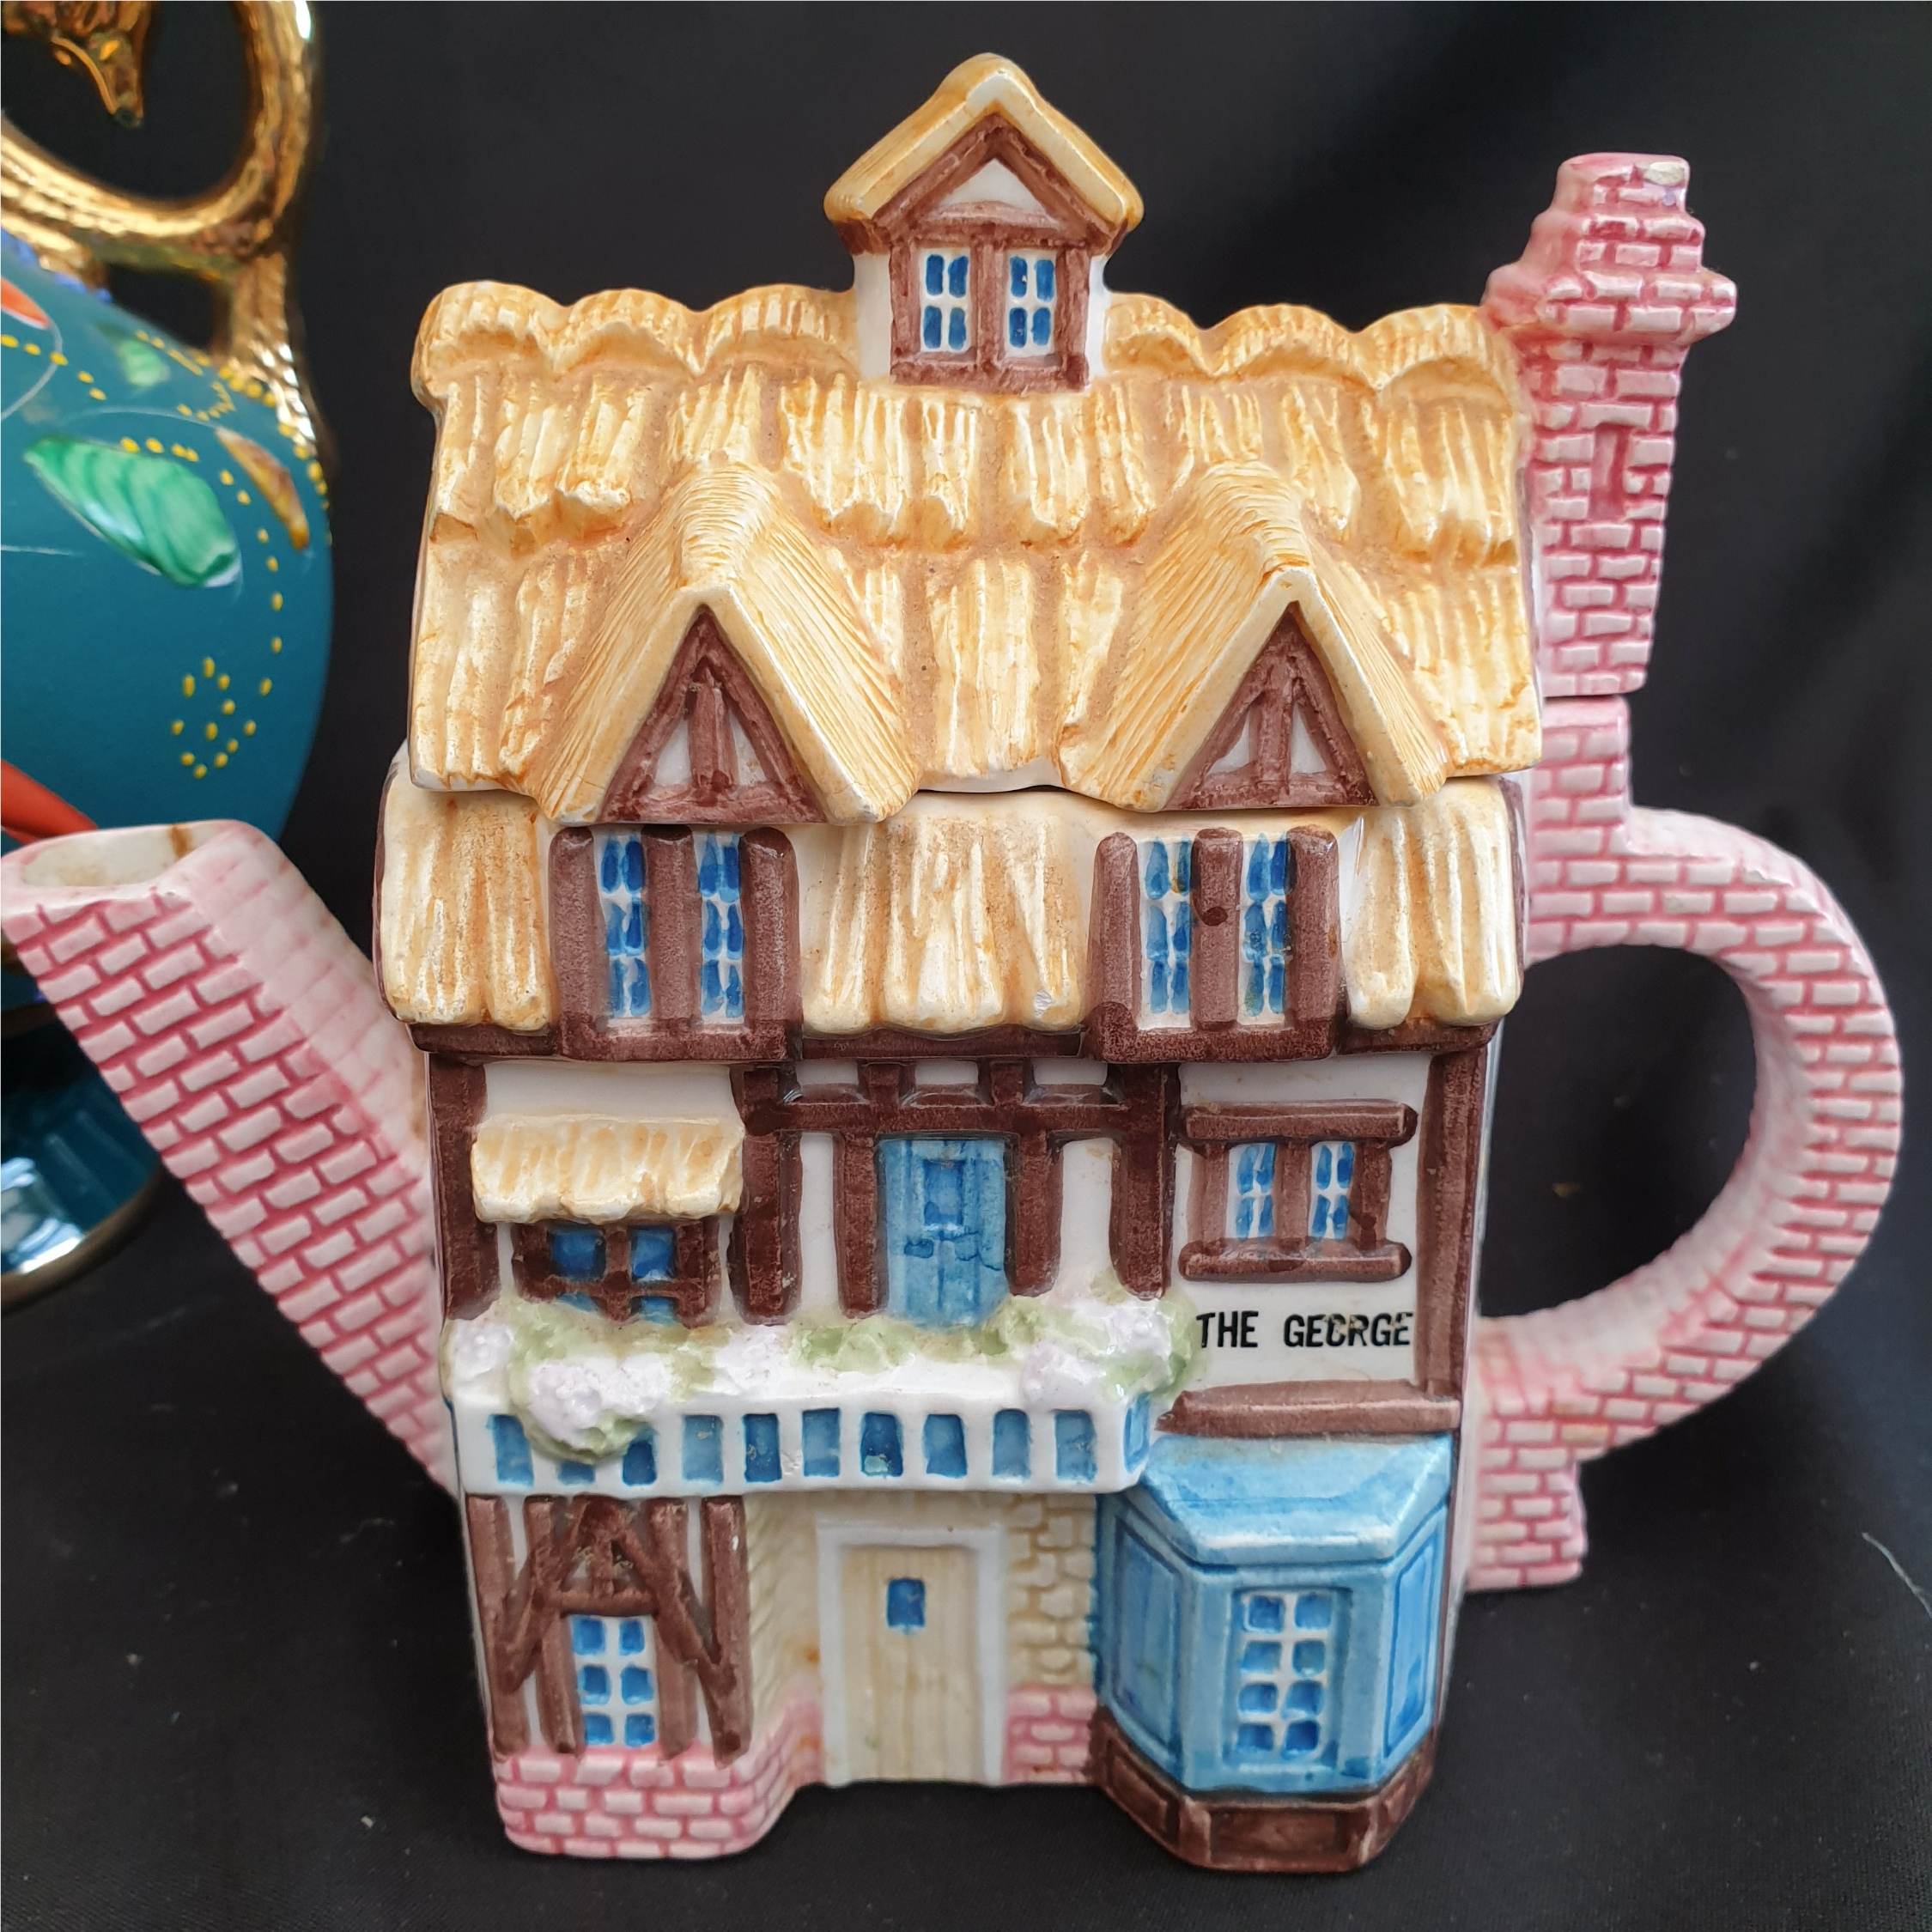 Vintage Parcel of Ceramics Includes Novelty Tea Pots - Image 3 of 5